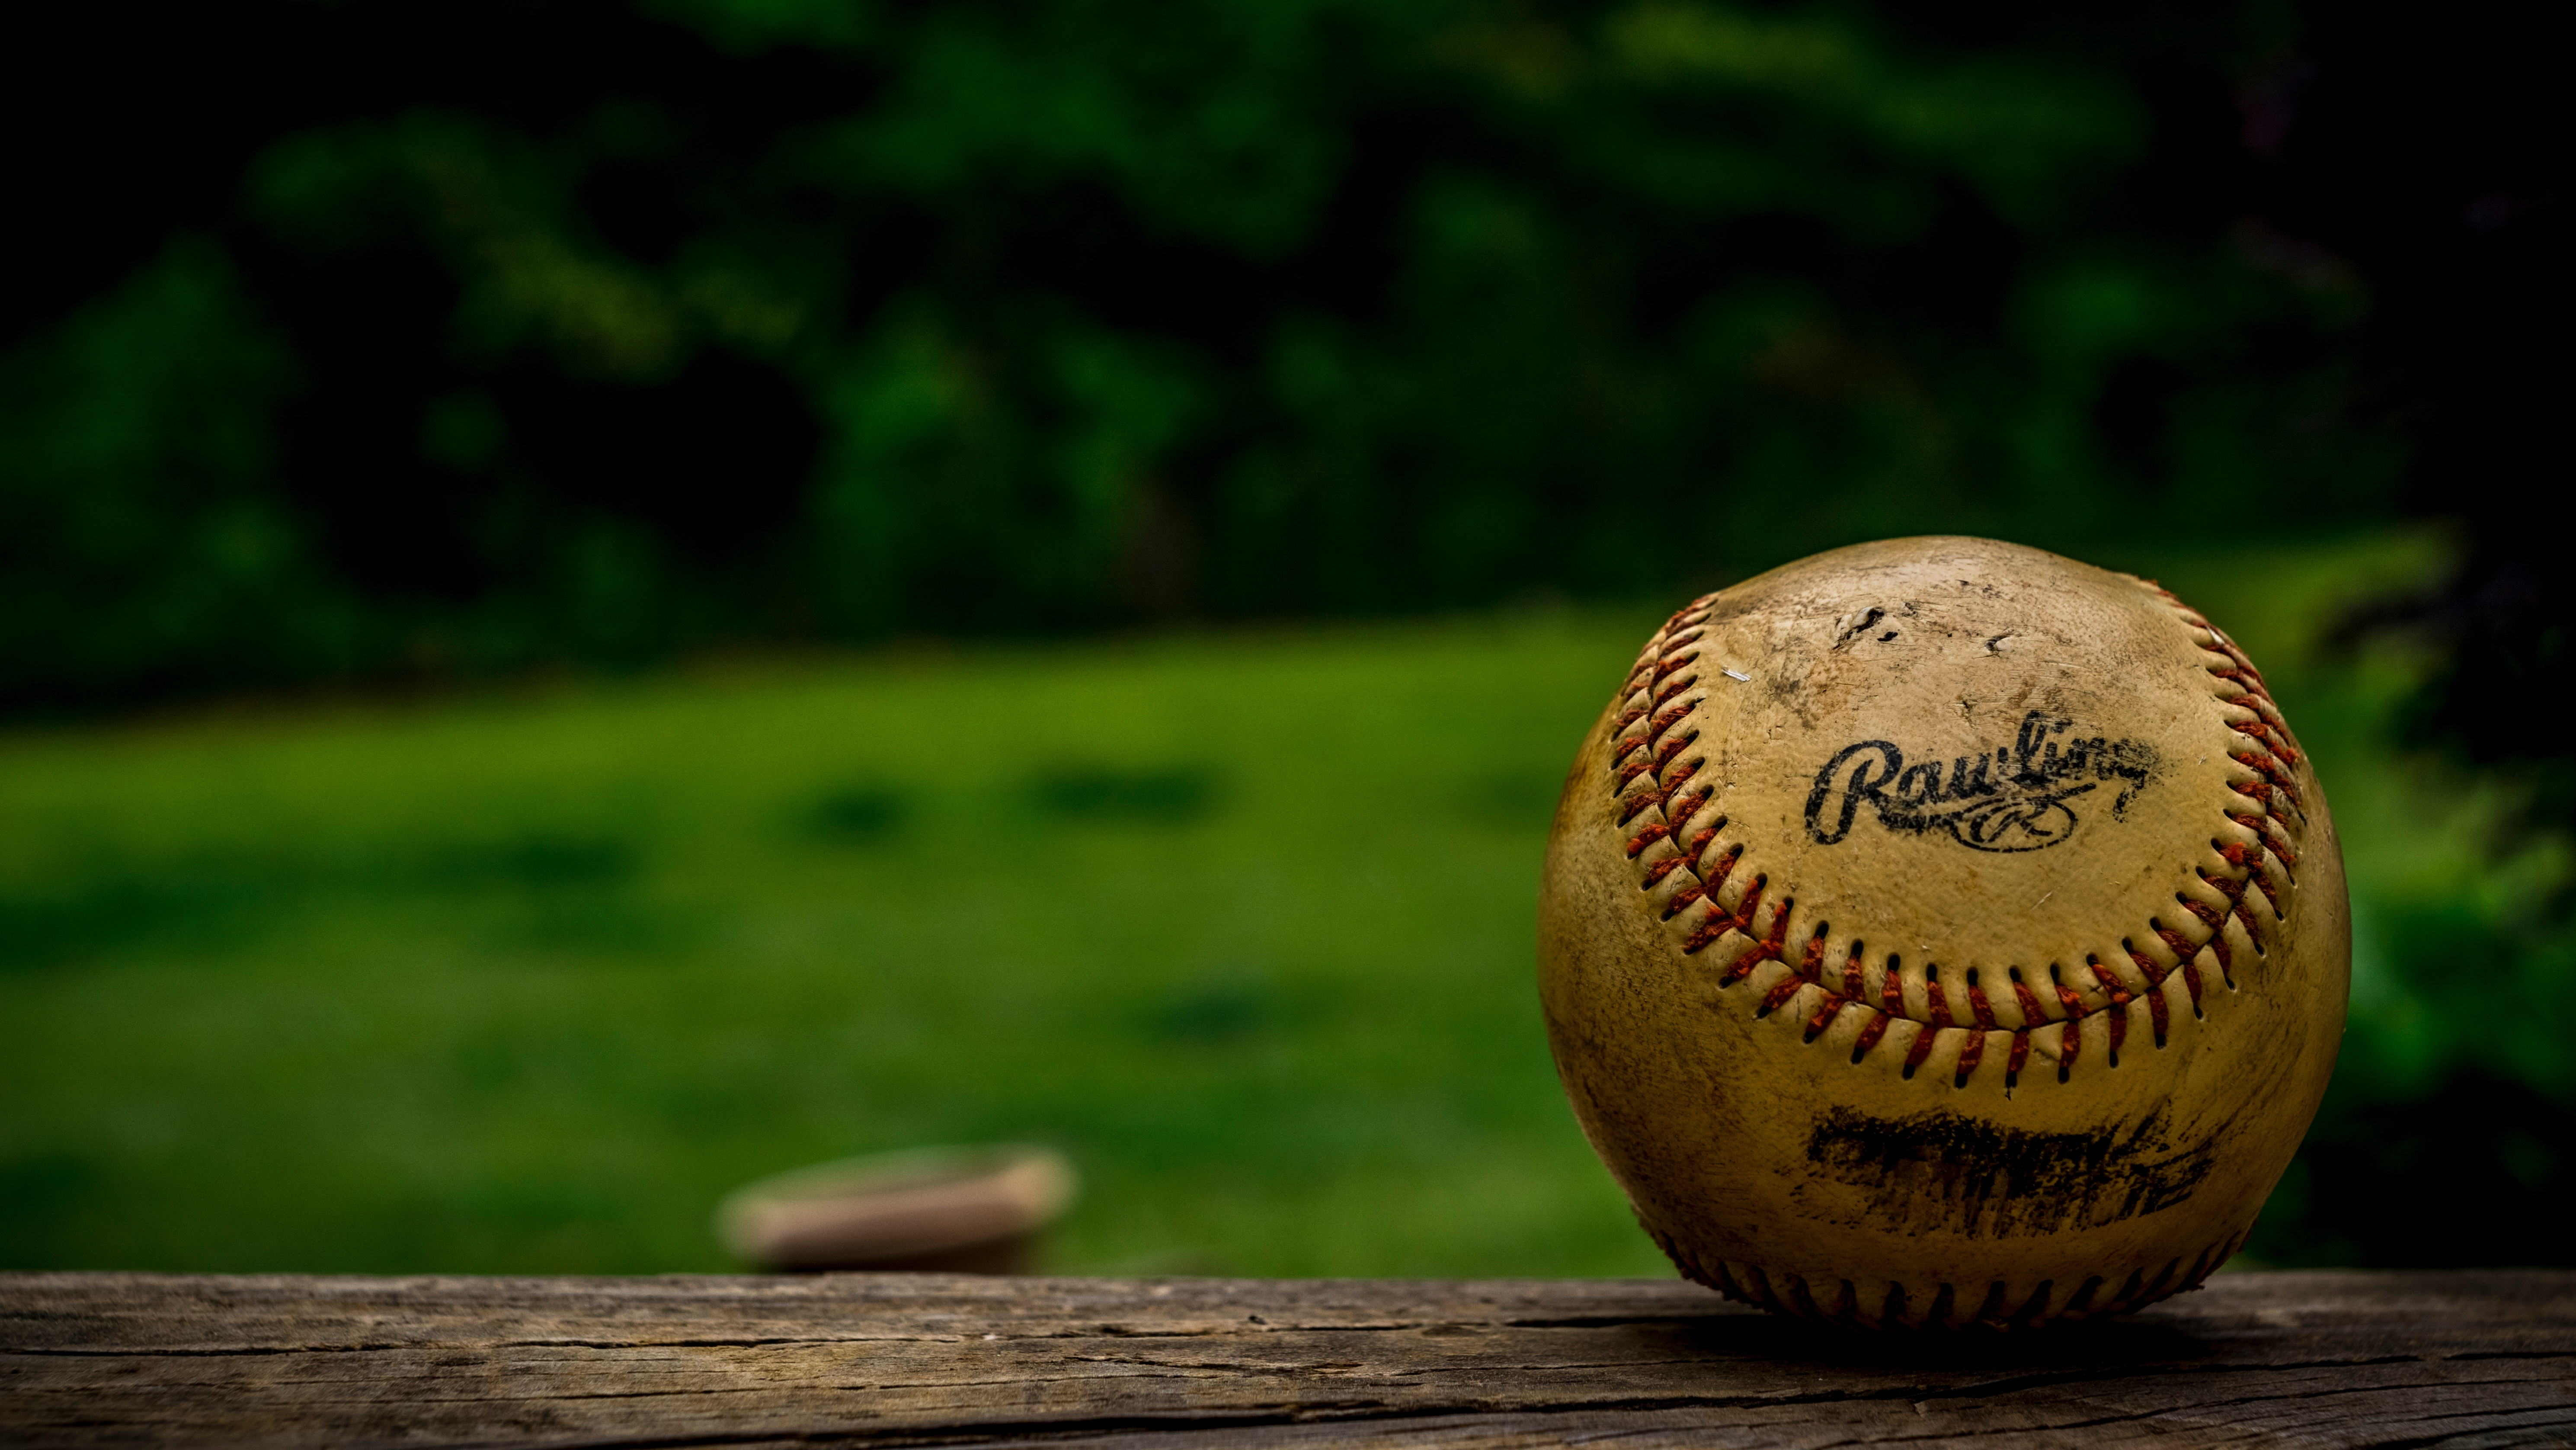 Baseball, Prayer, Lent and Practice